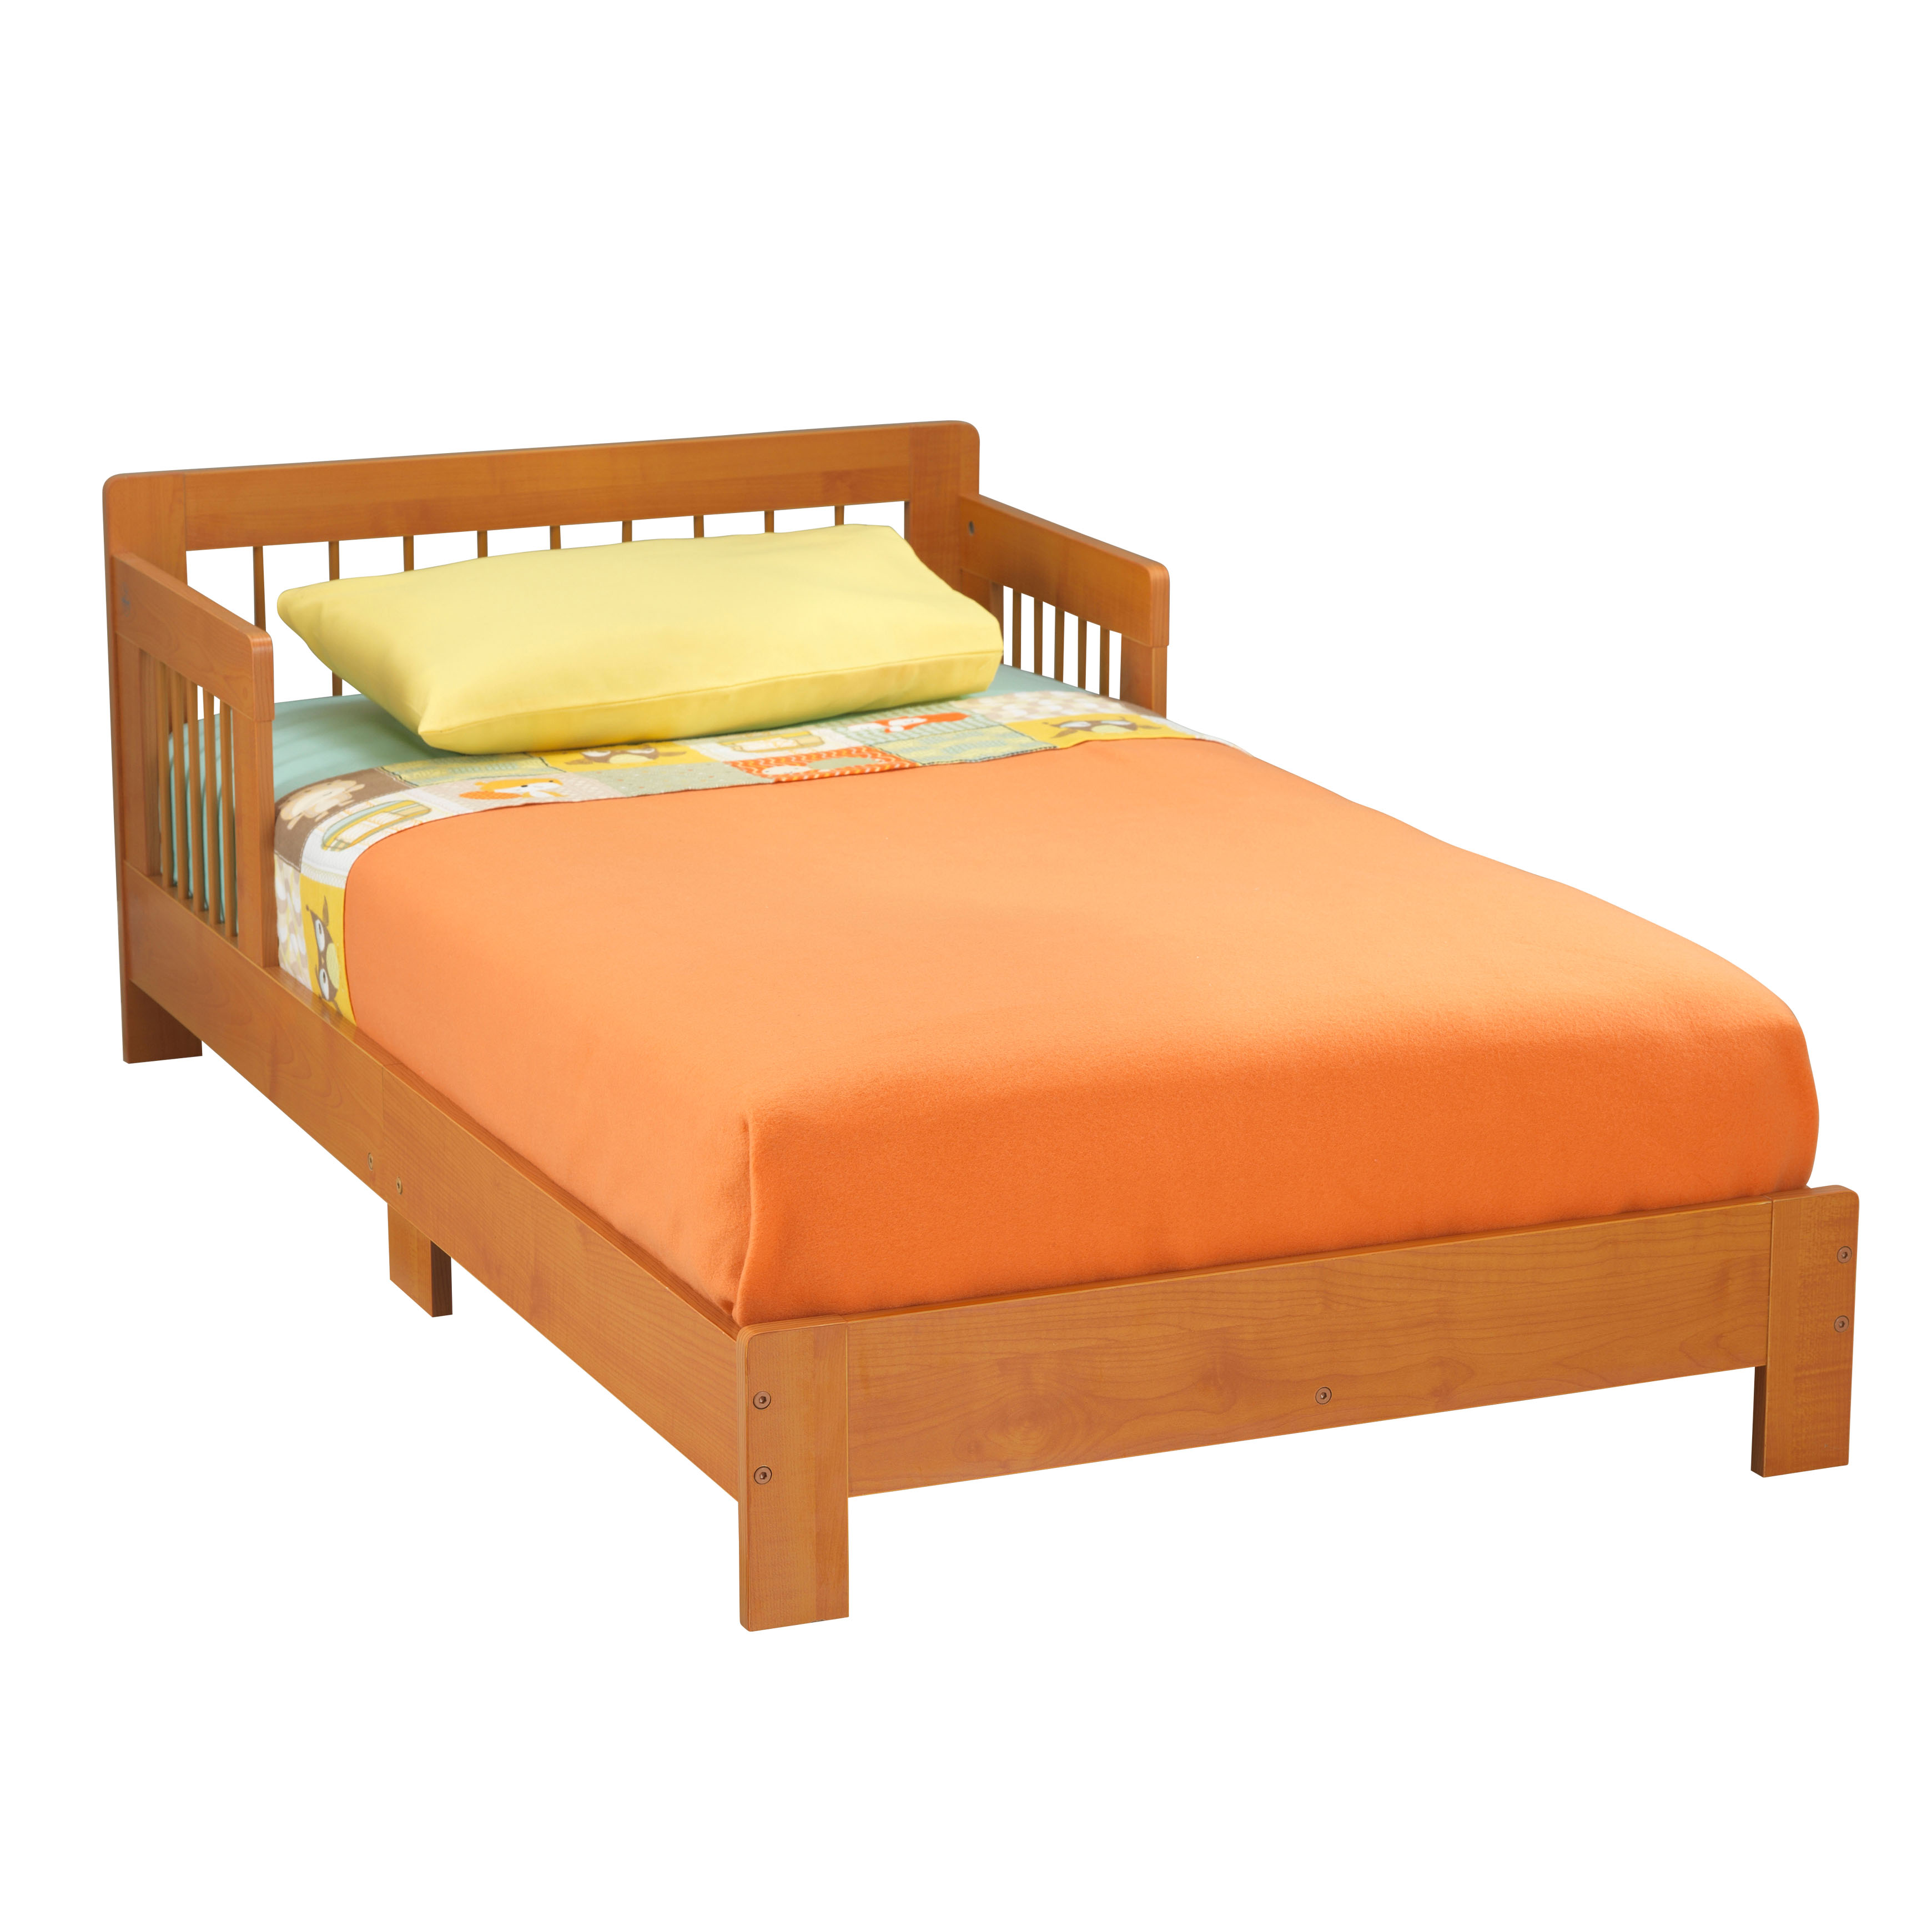 Kidkraft Houston Wooden Toddler Bed With Side Rails And Spindle